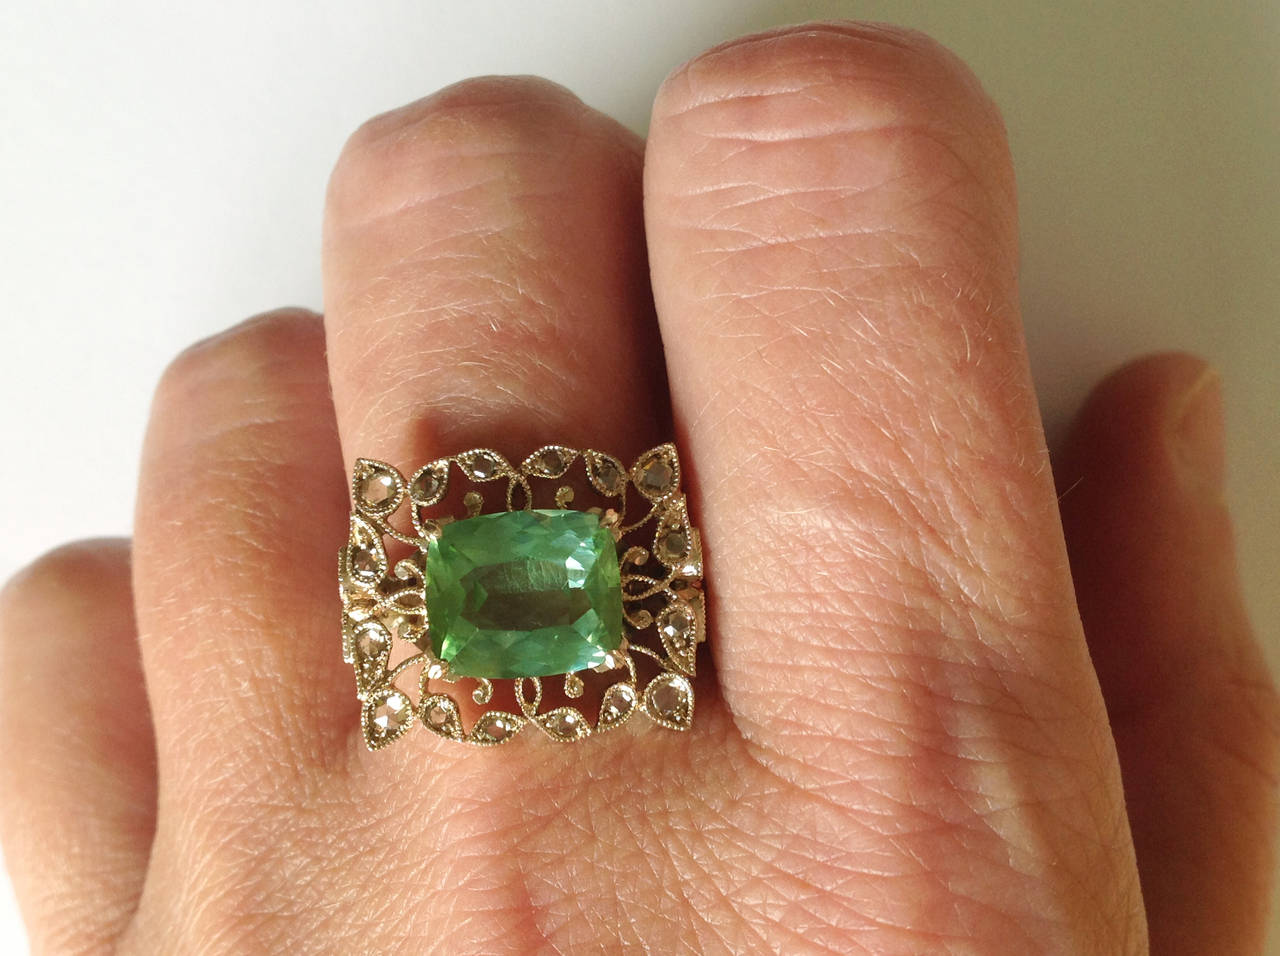 Dalben Green Tourmaline Rose Cut Diamond Gold Fashion Ring For Sale 4